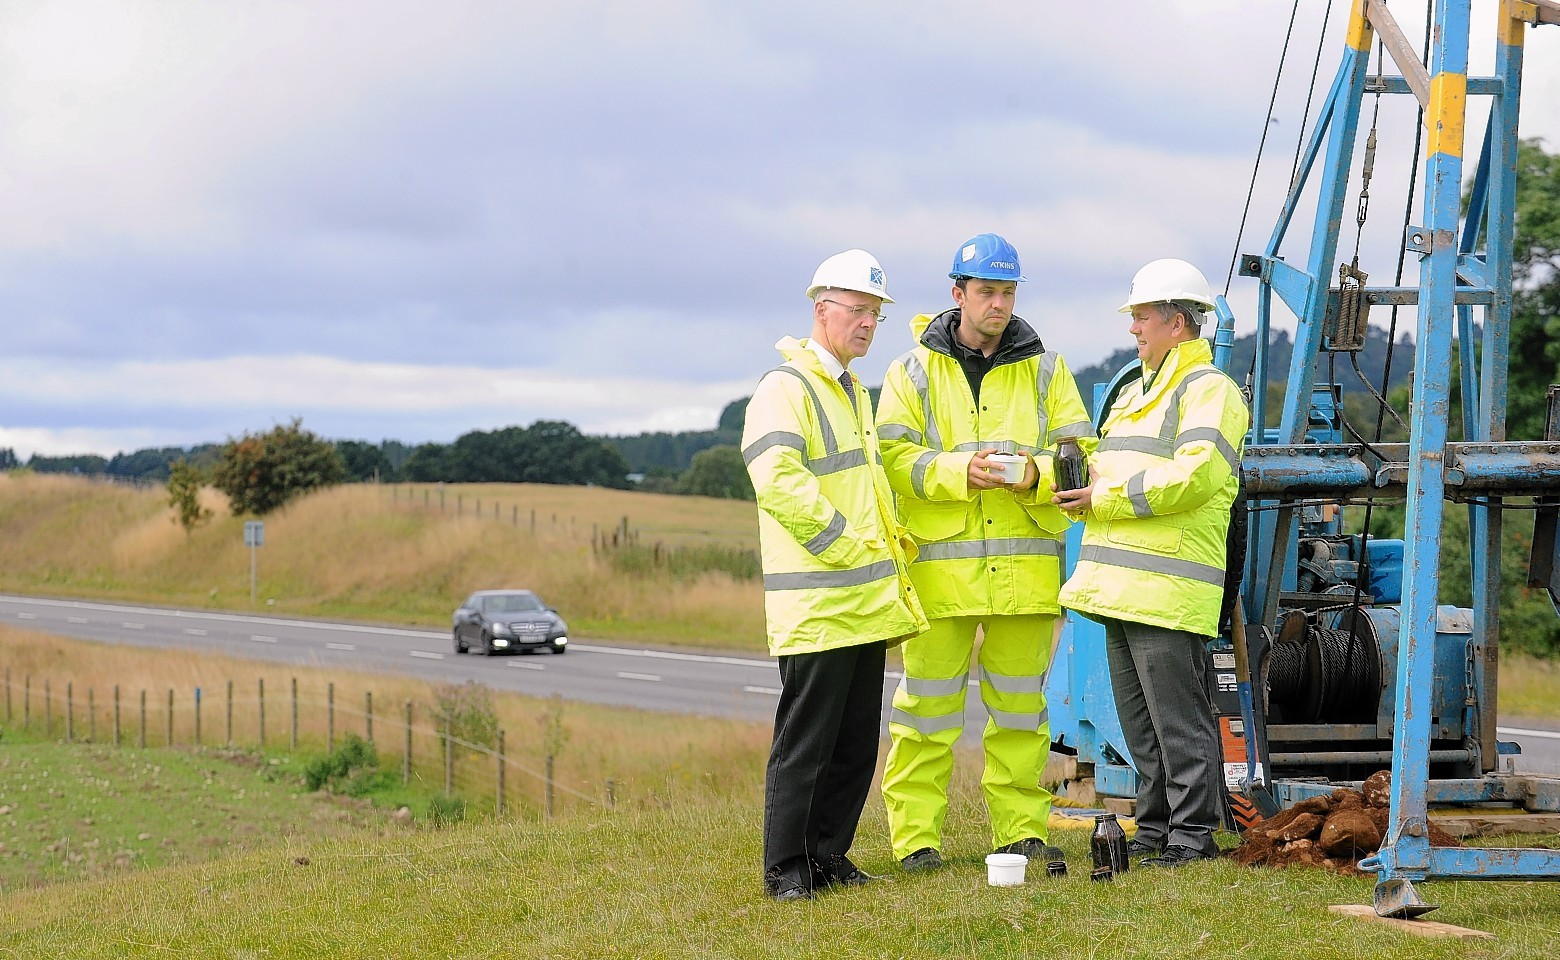 Keith Brown observes the work on the A9